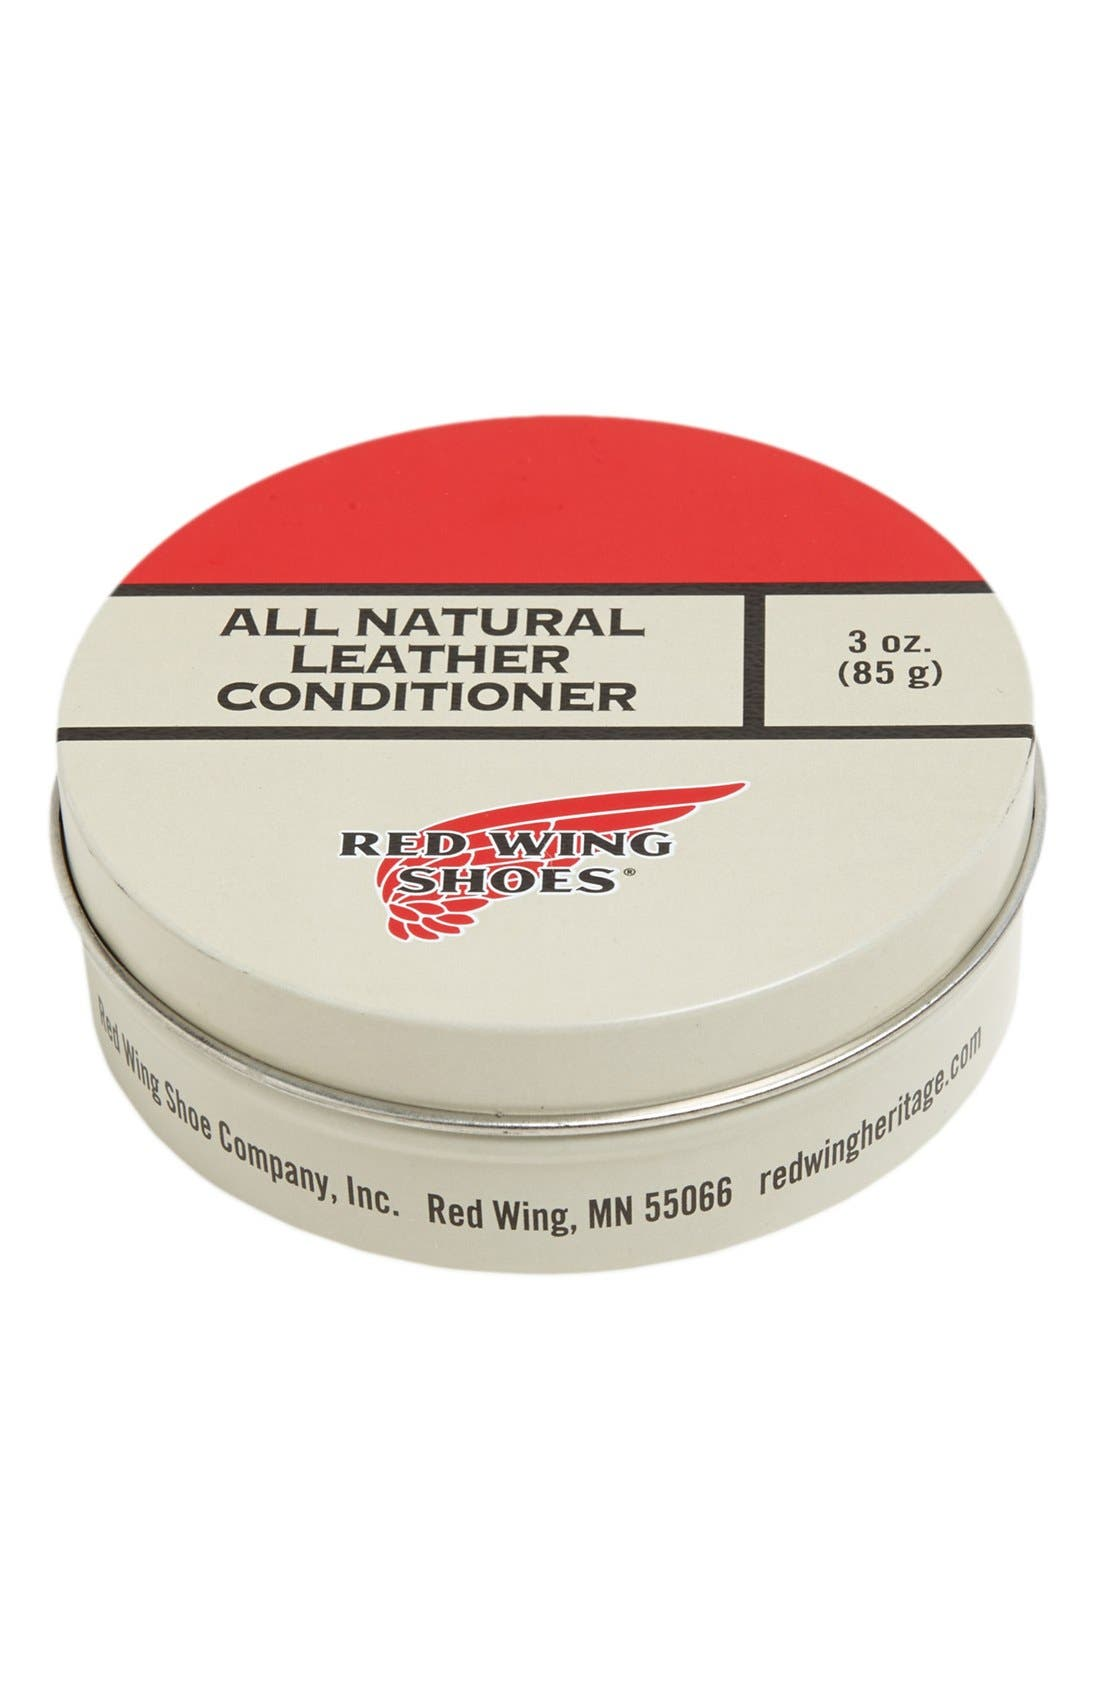 Main Image - Red Wing All Natural Leather Conditioner